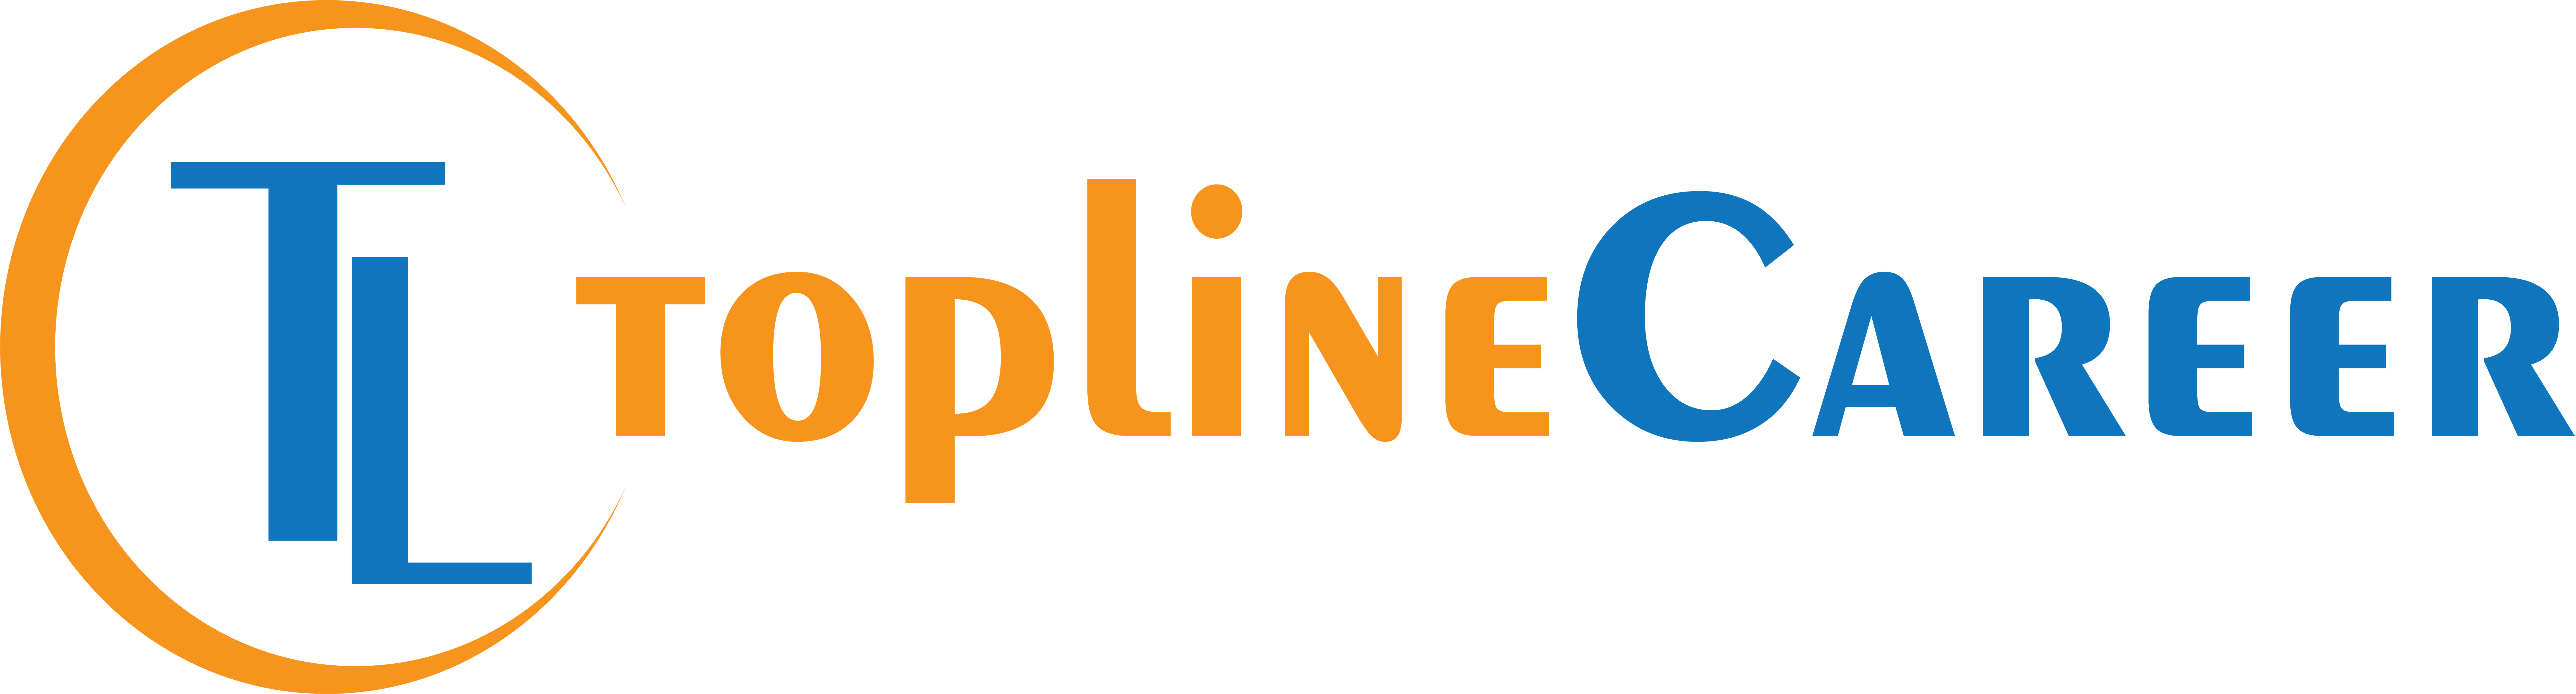 TopLine Career - Best IT Coaching Institute in Delhi